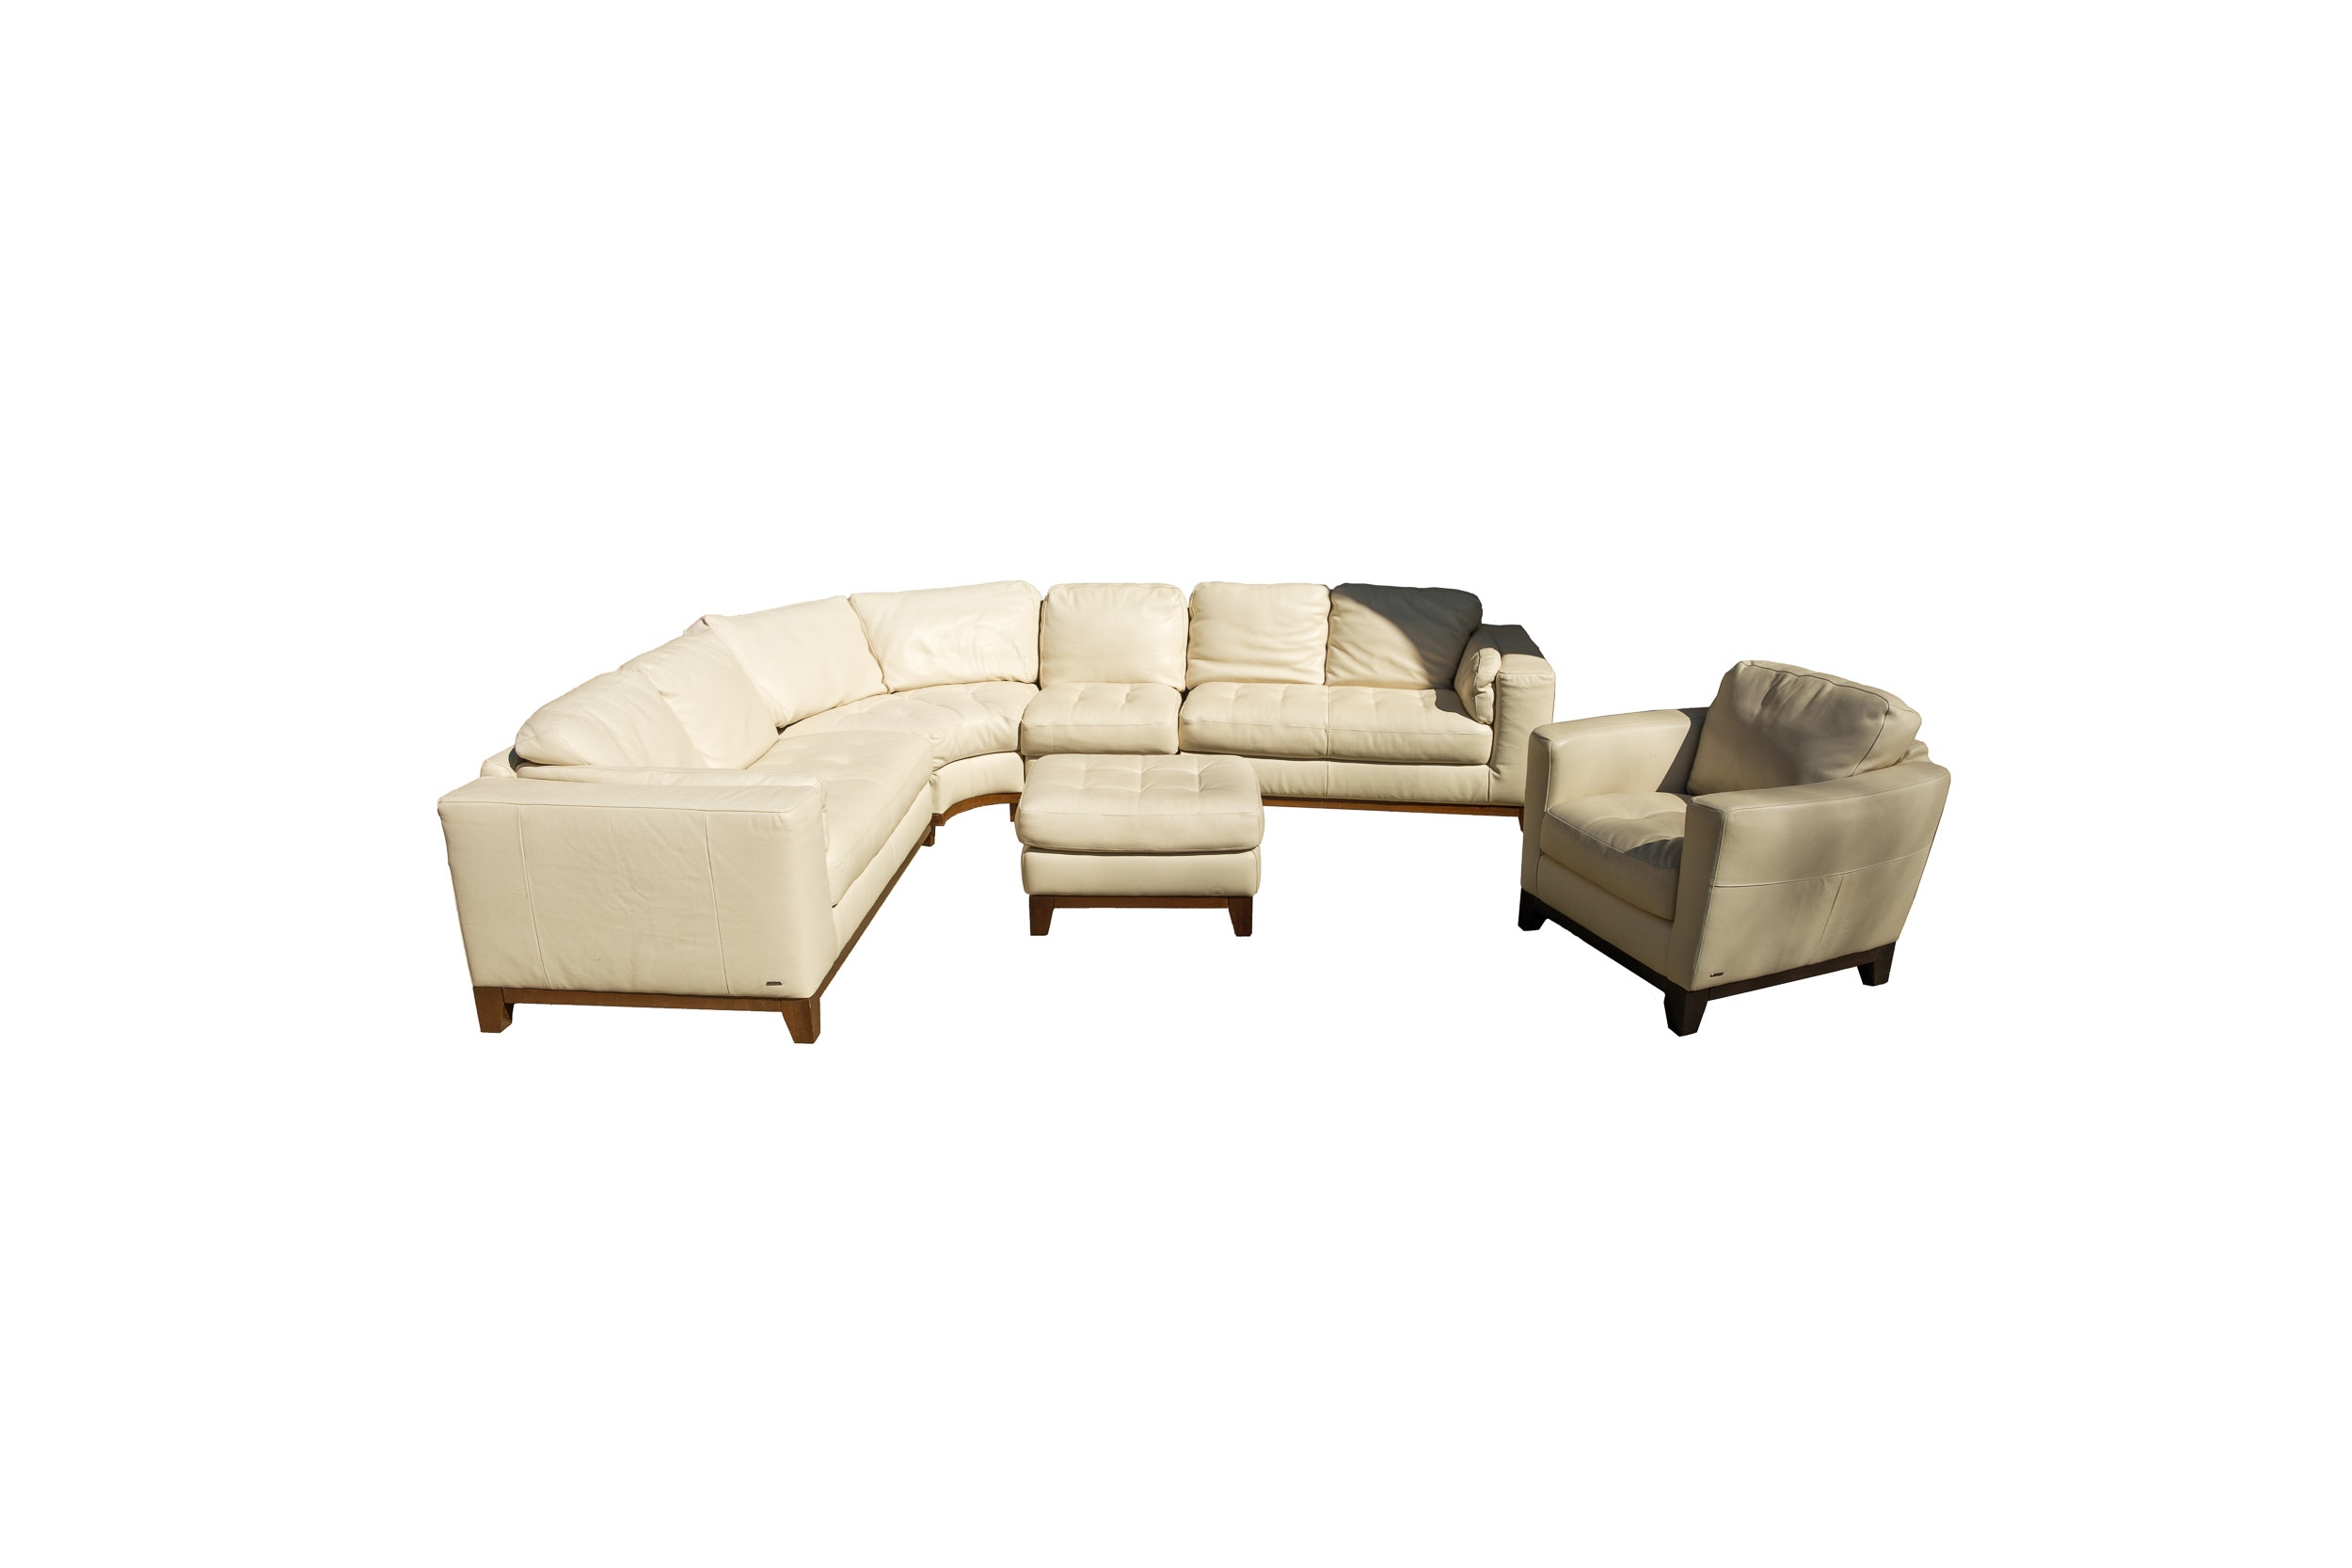 Beige Leather Sectional Sofa with Armchair and Ottoman by Natuzzi